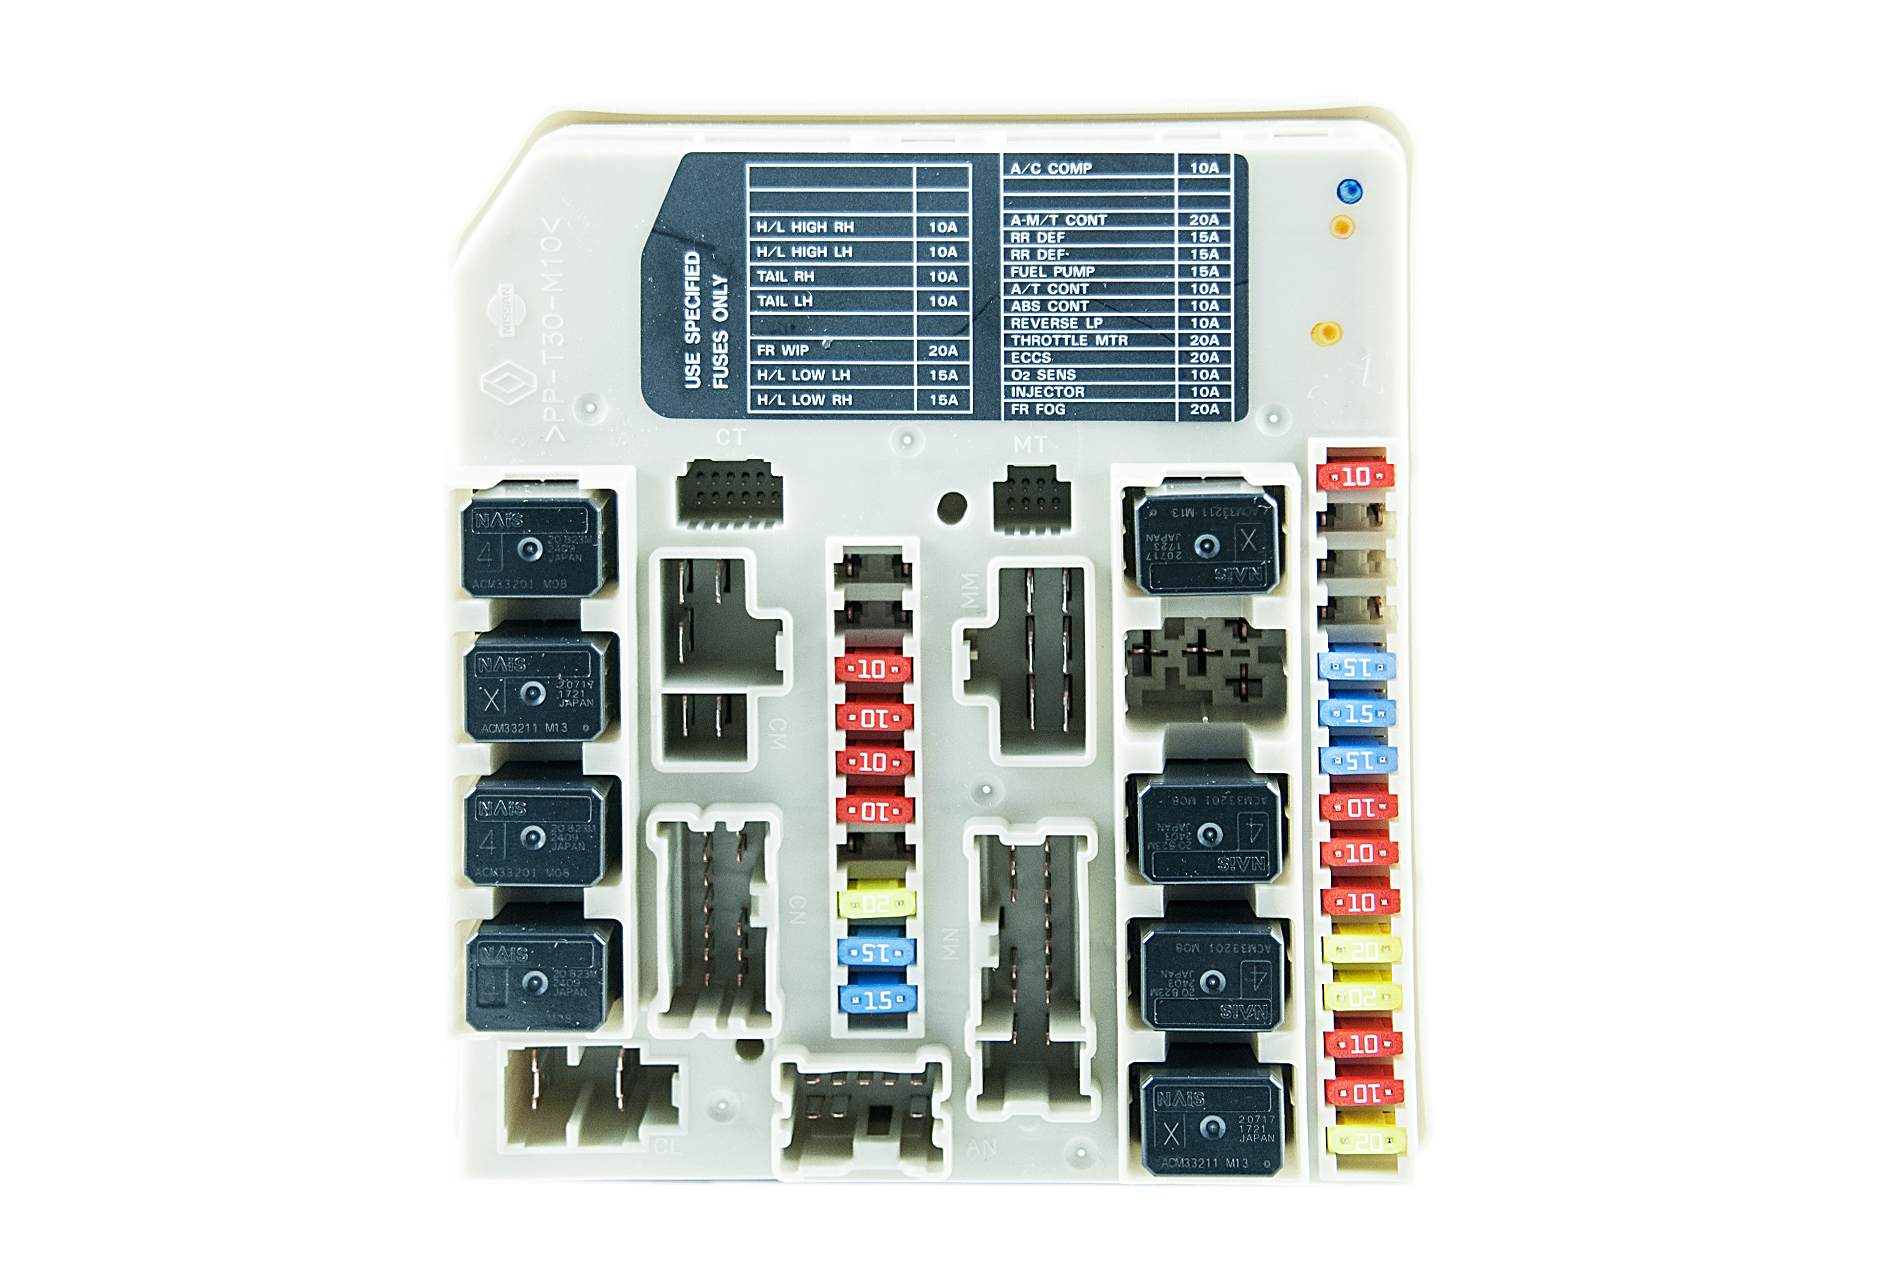 284B7AX61Aa nissan genuine micra note ipdm power distribution module nissan note fuse box layout at edmiracle.co